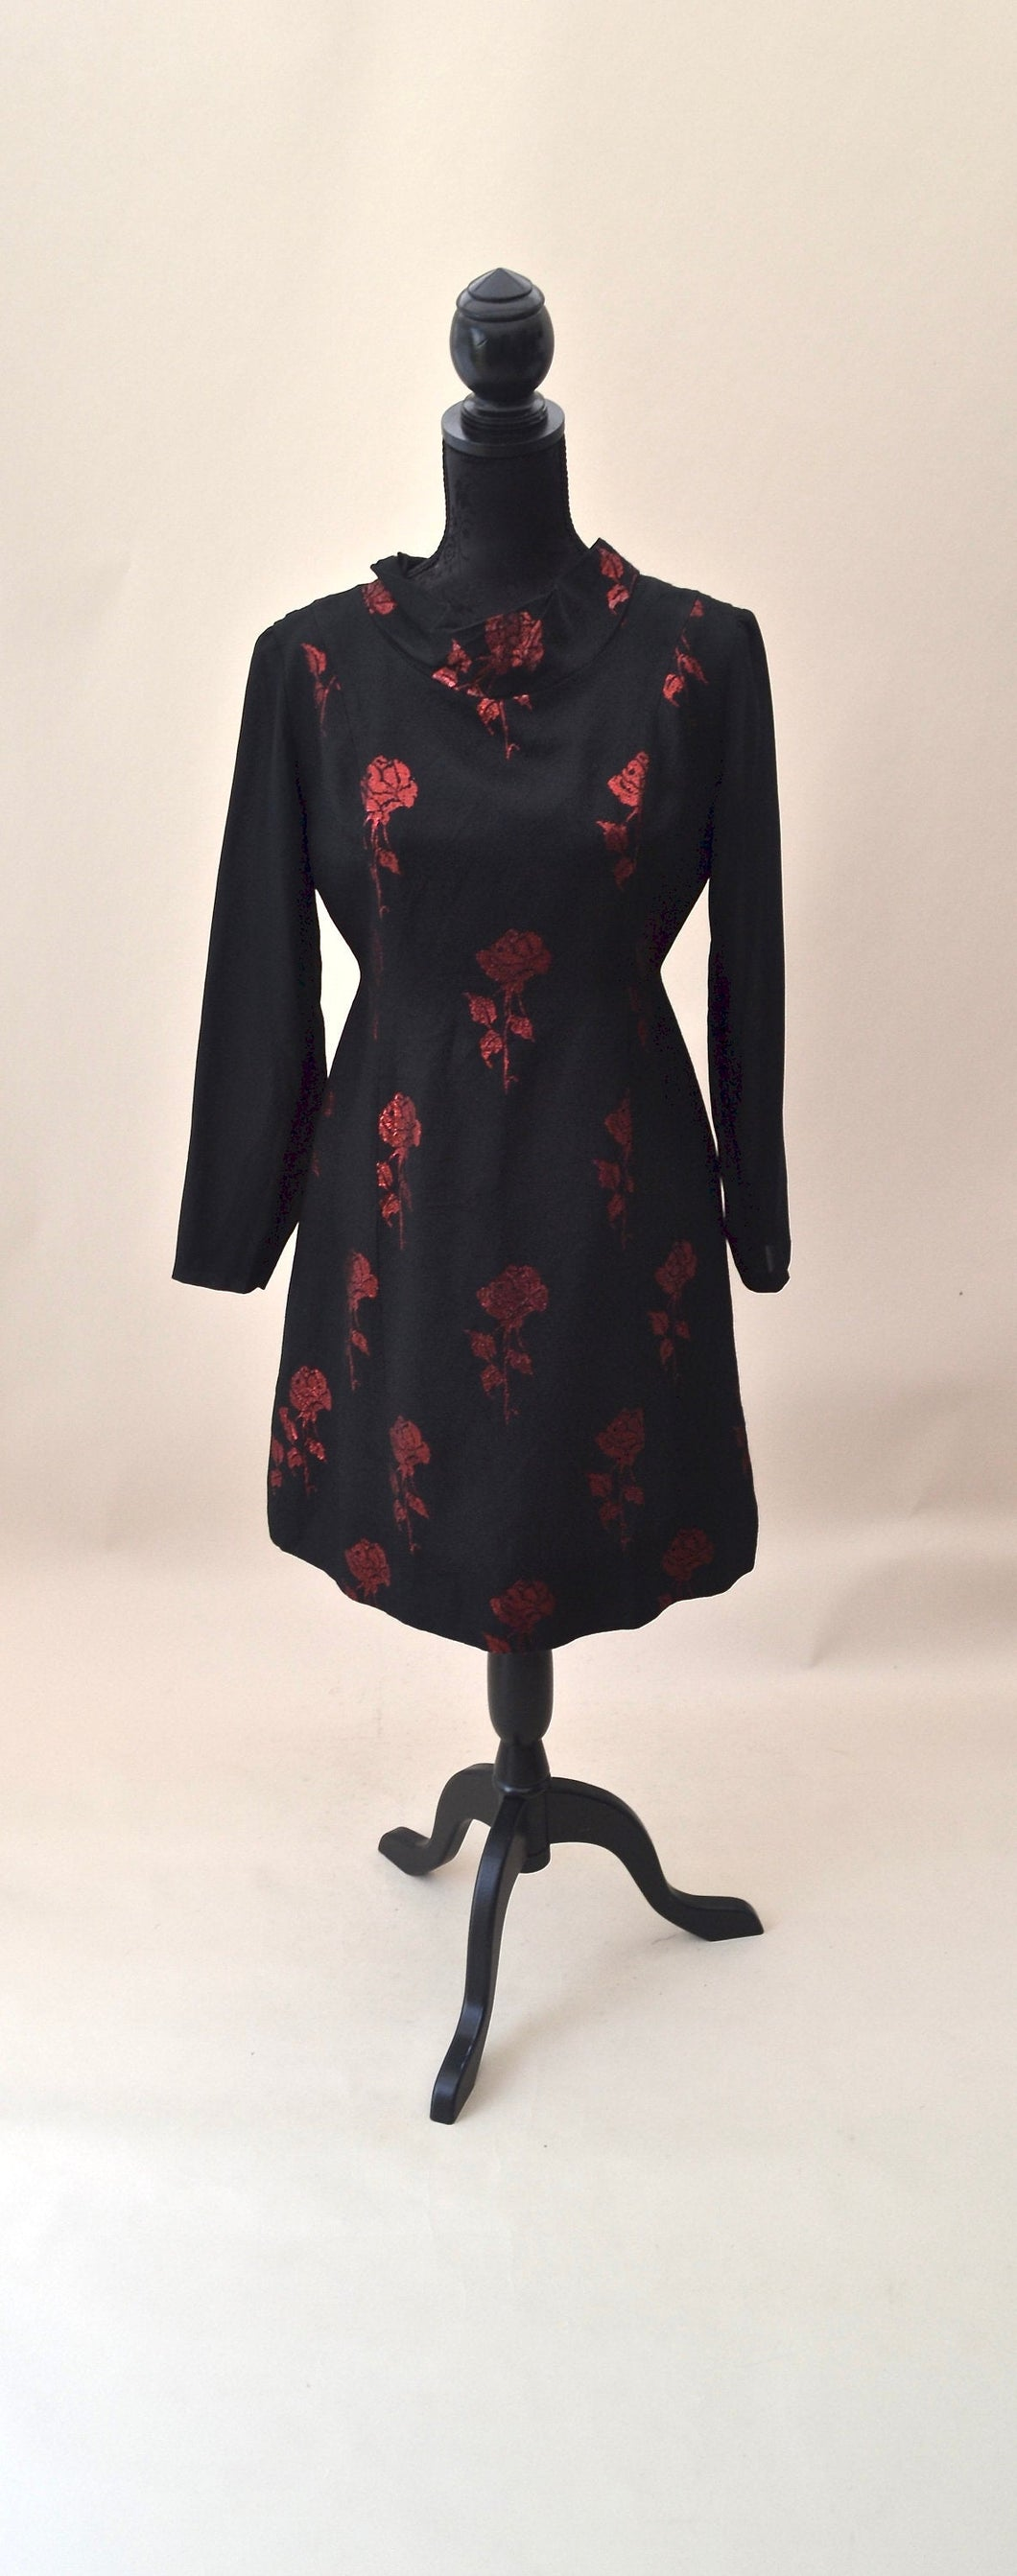 1960s Black and Red Cocktail dress | Long sleeve floral evening dress | Est UK size 10/12